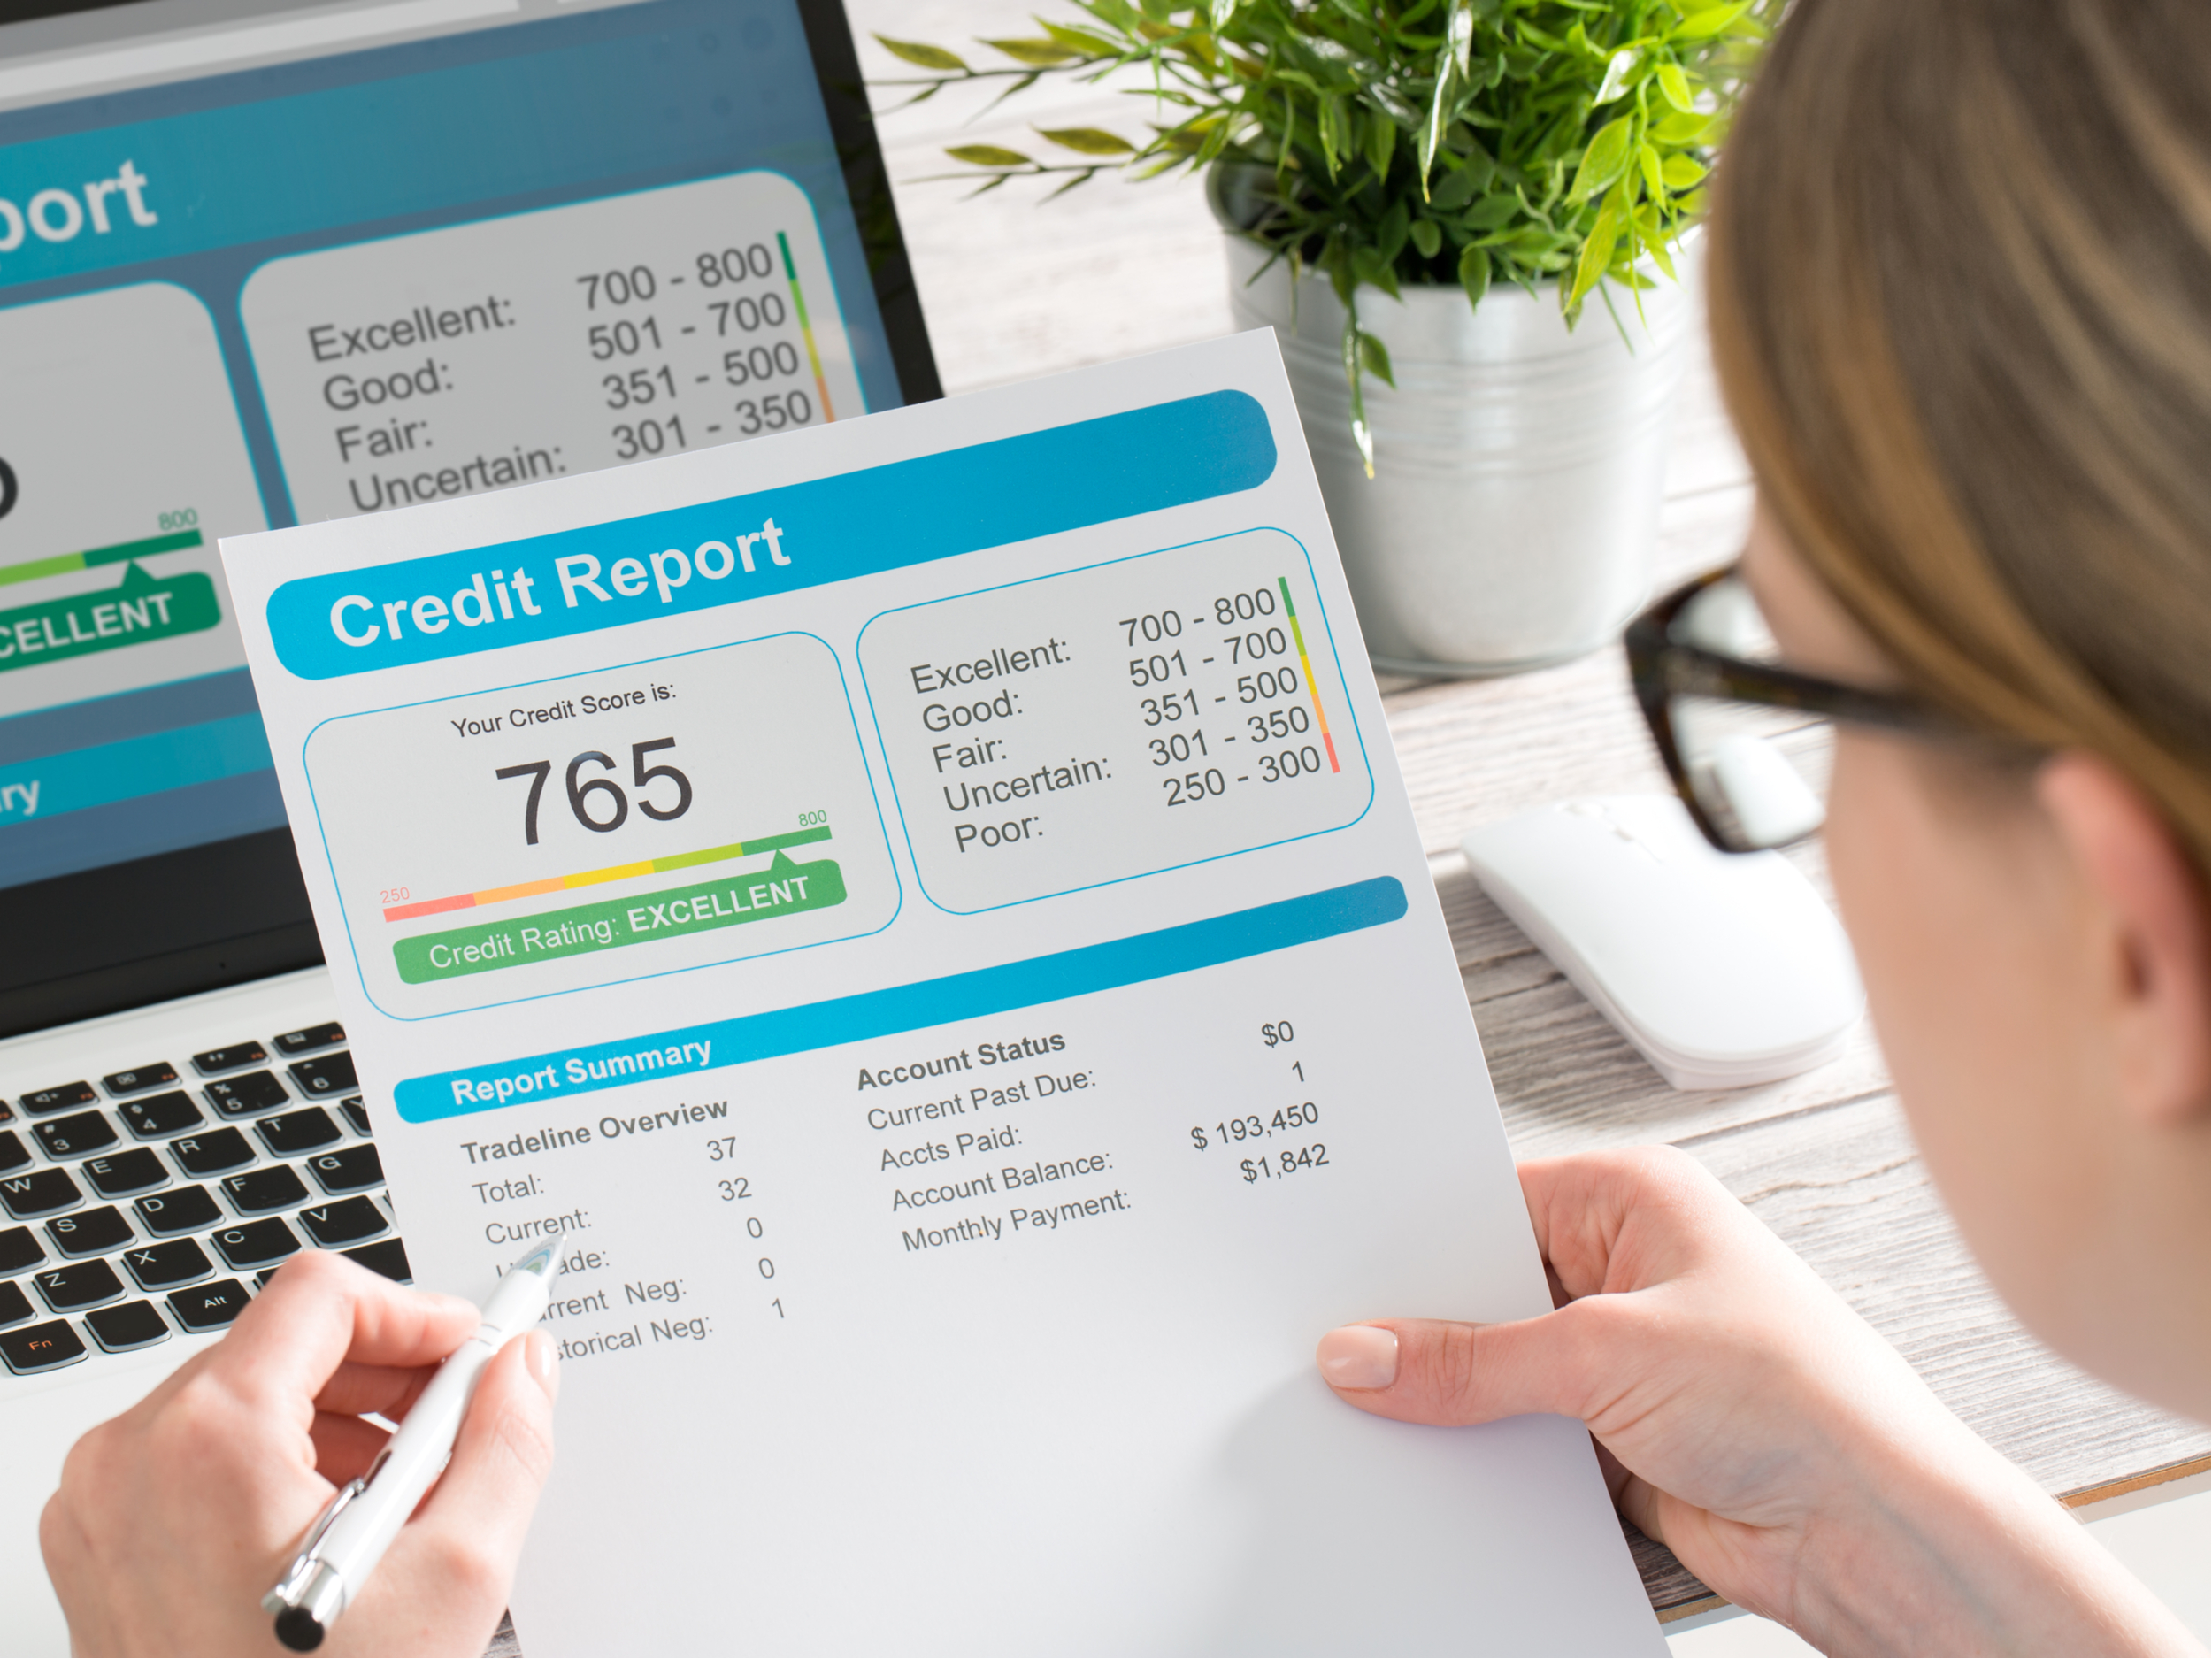 You want to make sure that your credit report is in tip-top shape - it dictates the quality of loans you can get. However, do you know what goes into a credit report? That's important information that you should know!